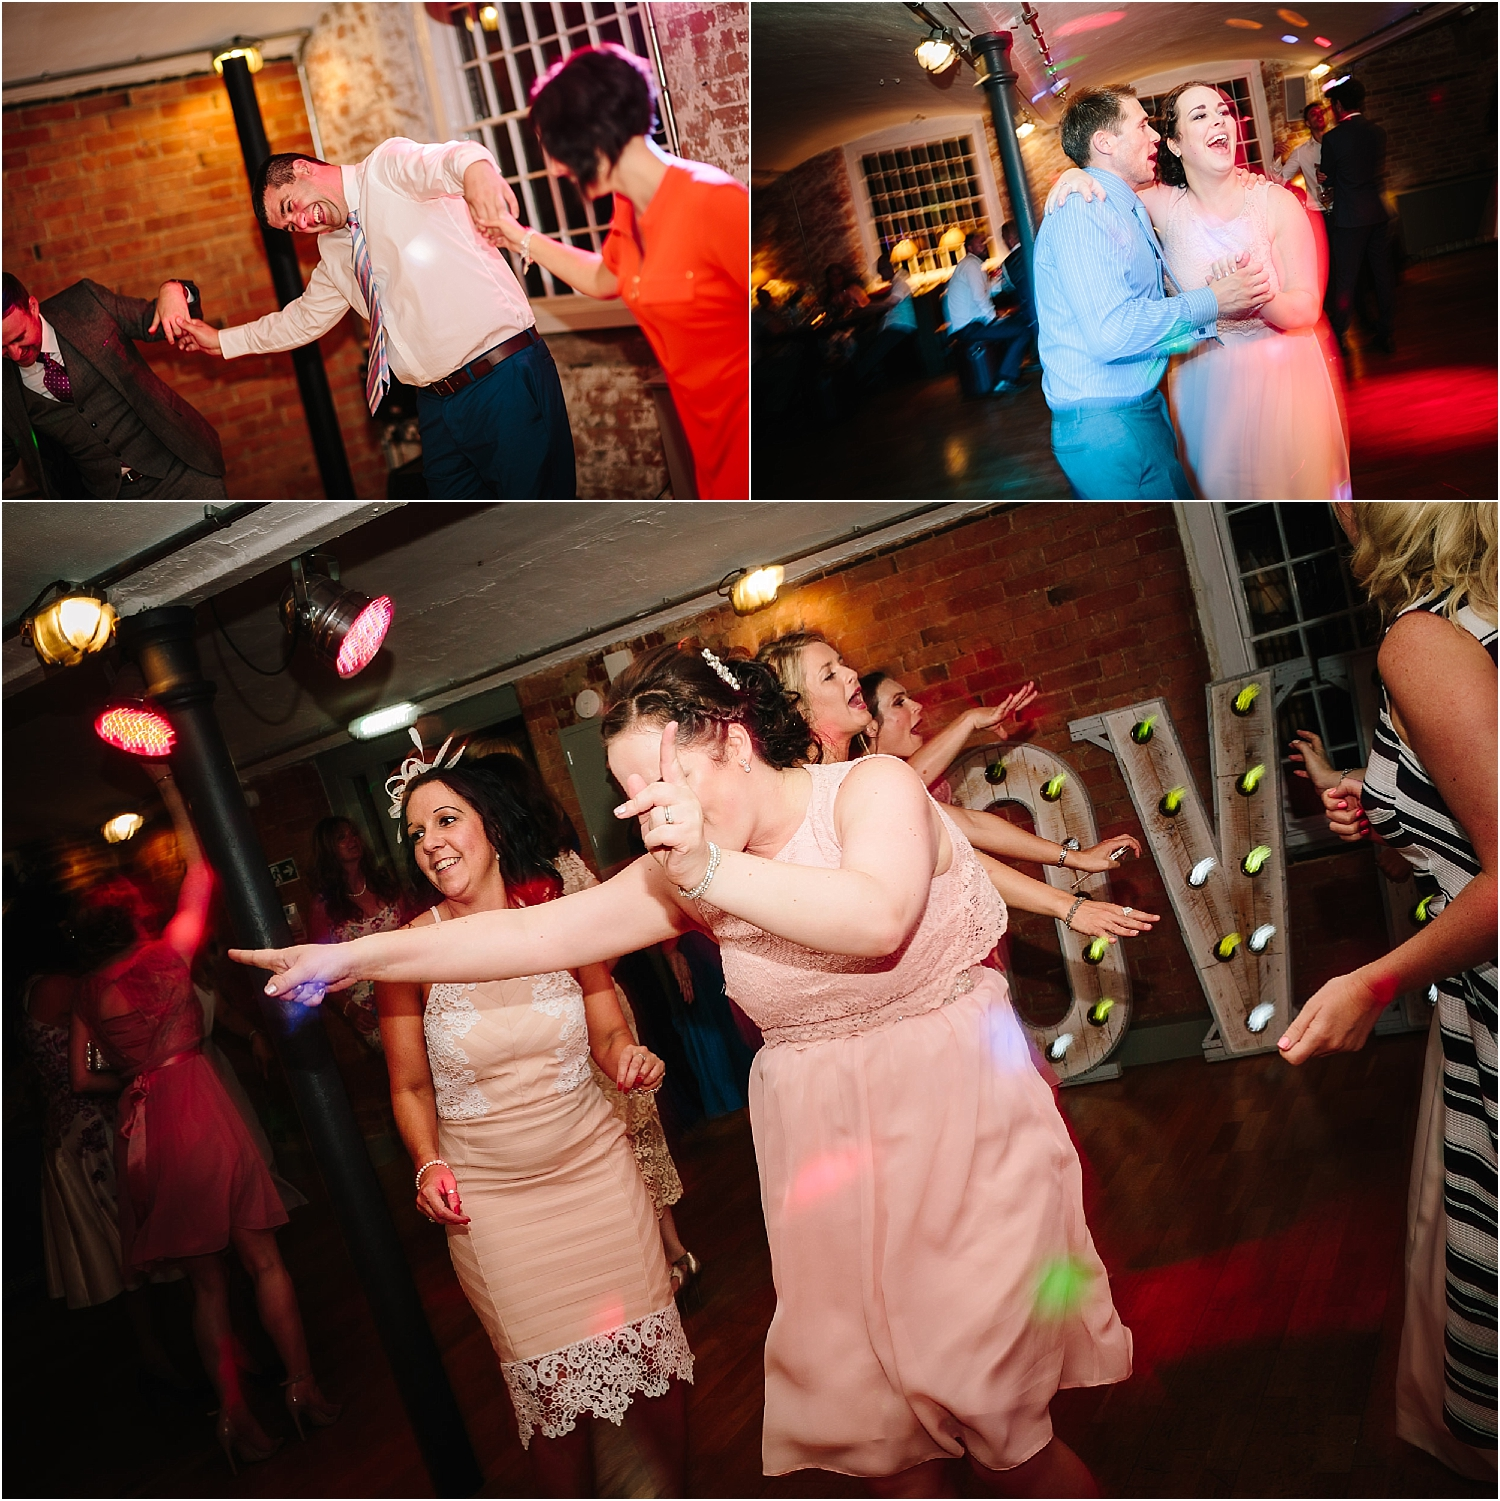 Wedding-west-mill-venue-professional-photographer-natural-documentary-nottingham-derby-458_BLOG.jpg